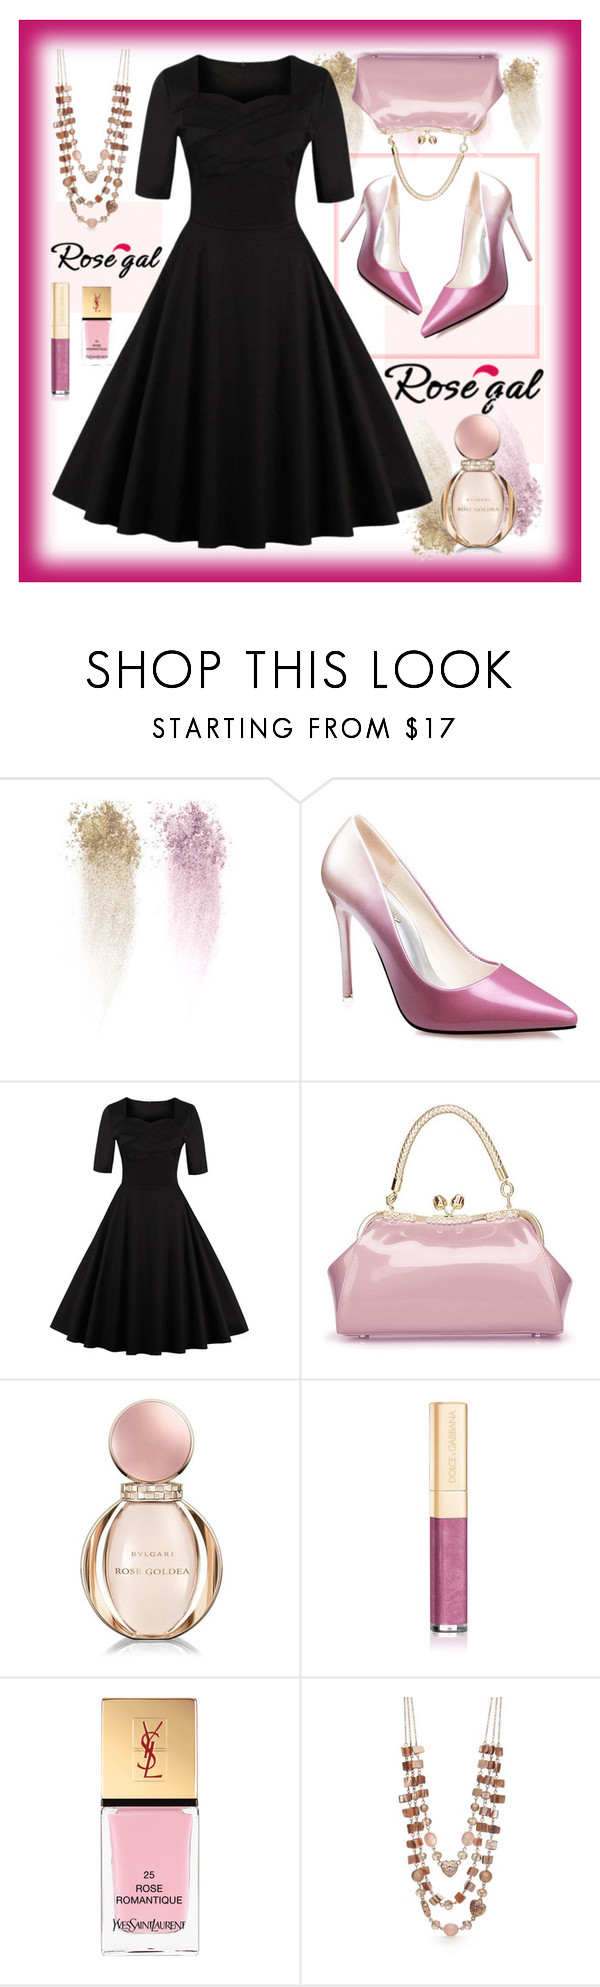 """""""Win $20 Cash from Rosegal!"""" by amisha73 ❤ liked on Polyvore featuring NARS Cosmetics, Bulgari, Dolce&Gabbana, Yves Saint Laurent, Kim Rogers, vintage, Pink, black, jewelry and rosegal"""